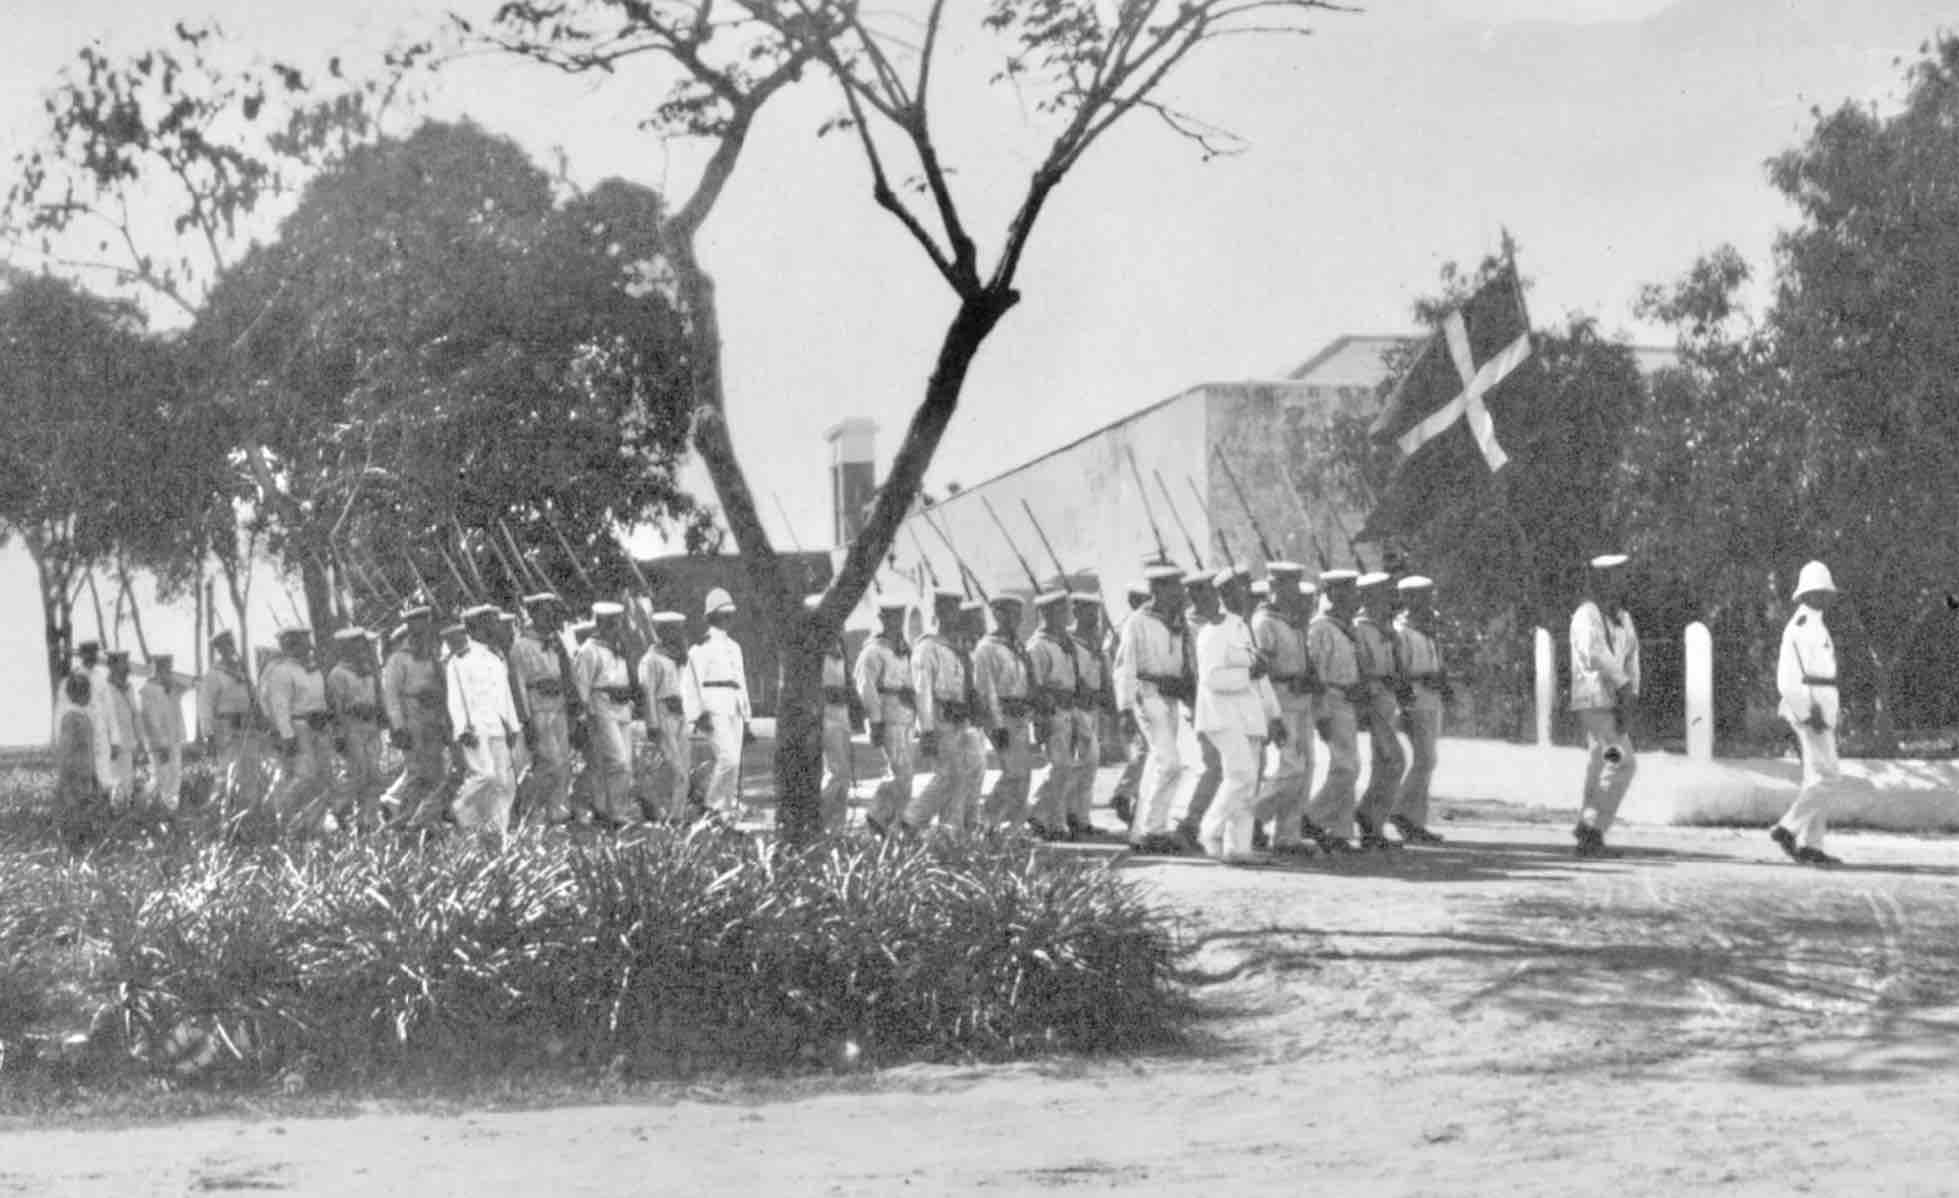 Valkyrien's Band in Frederiksted, St. Croix, Danish West Indies